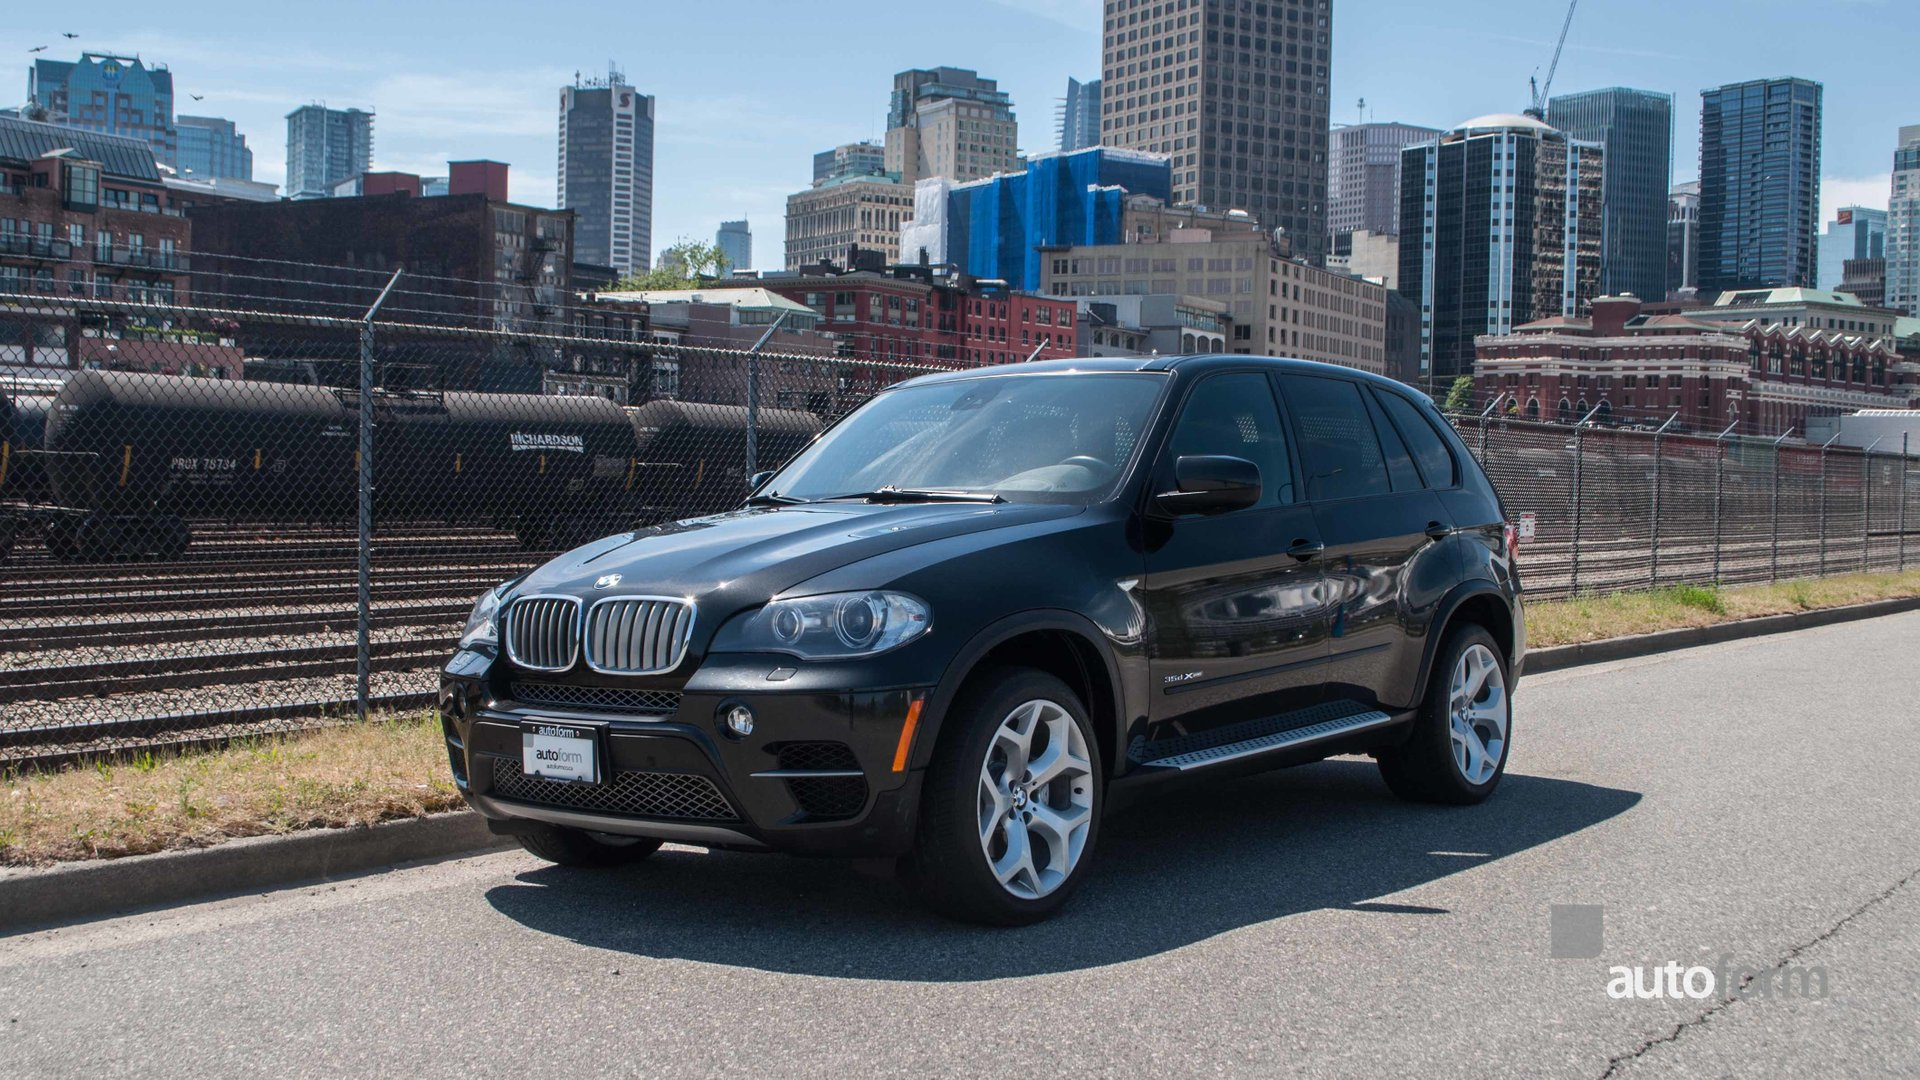 2011 bmw x5 35d diesel loaded